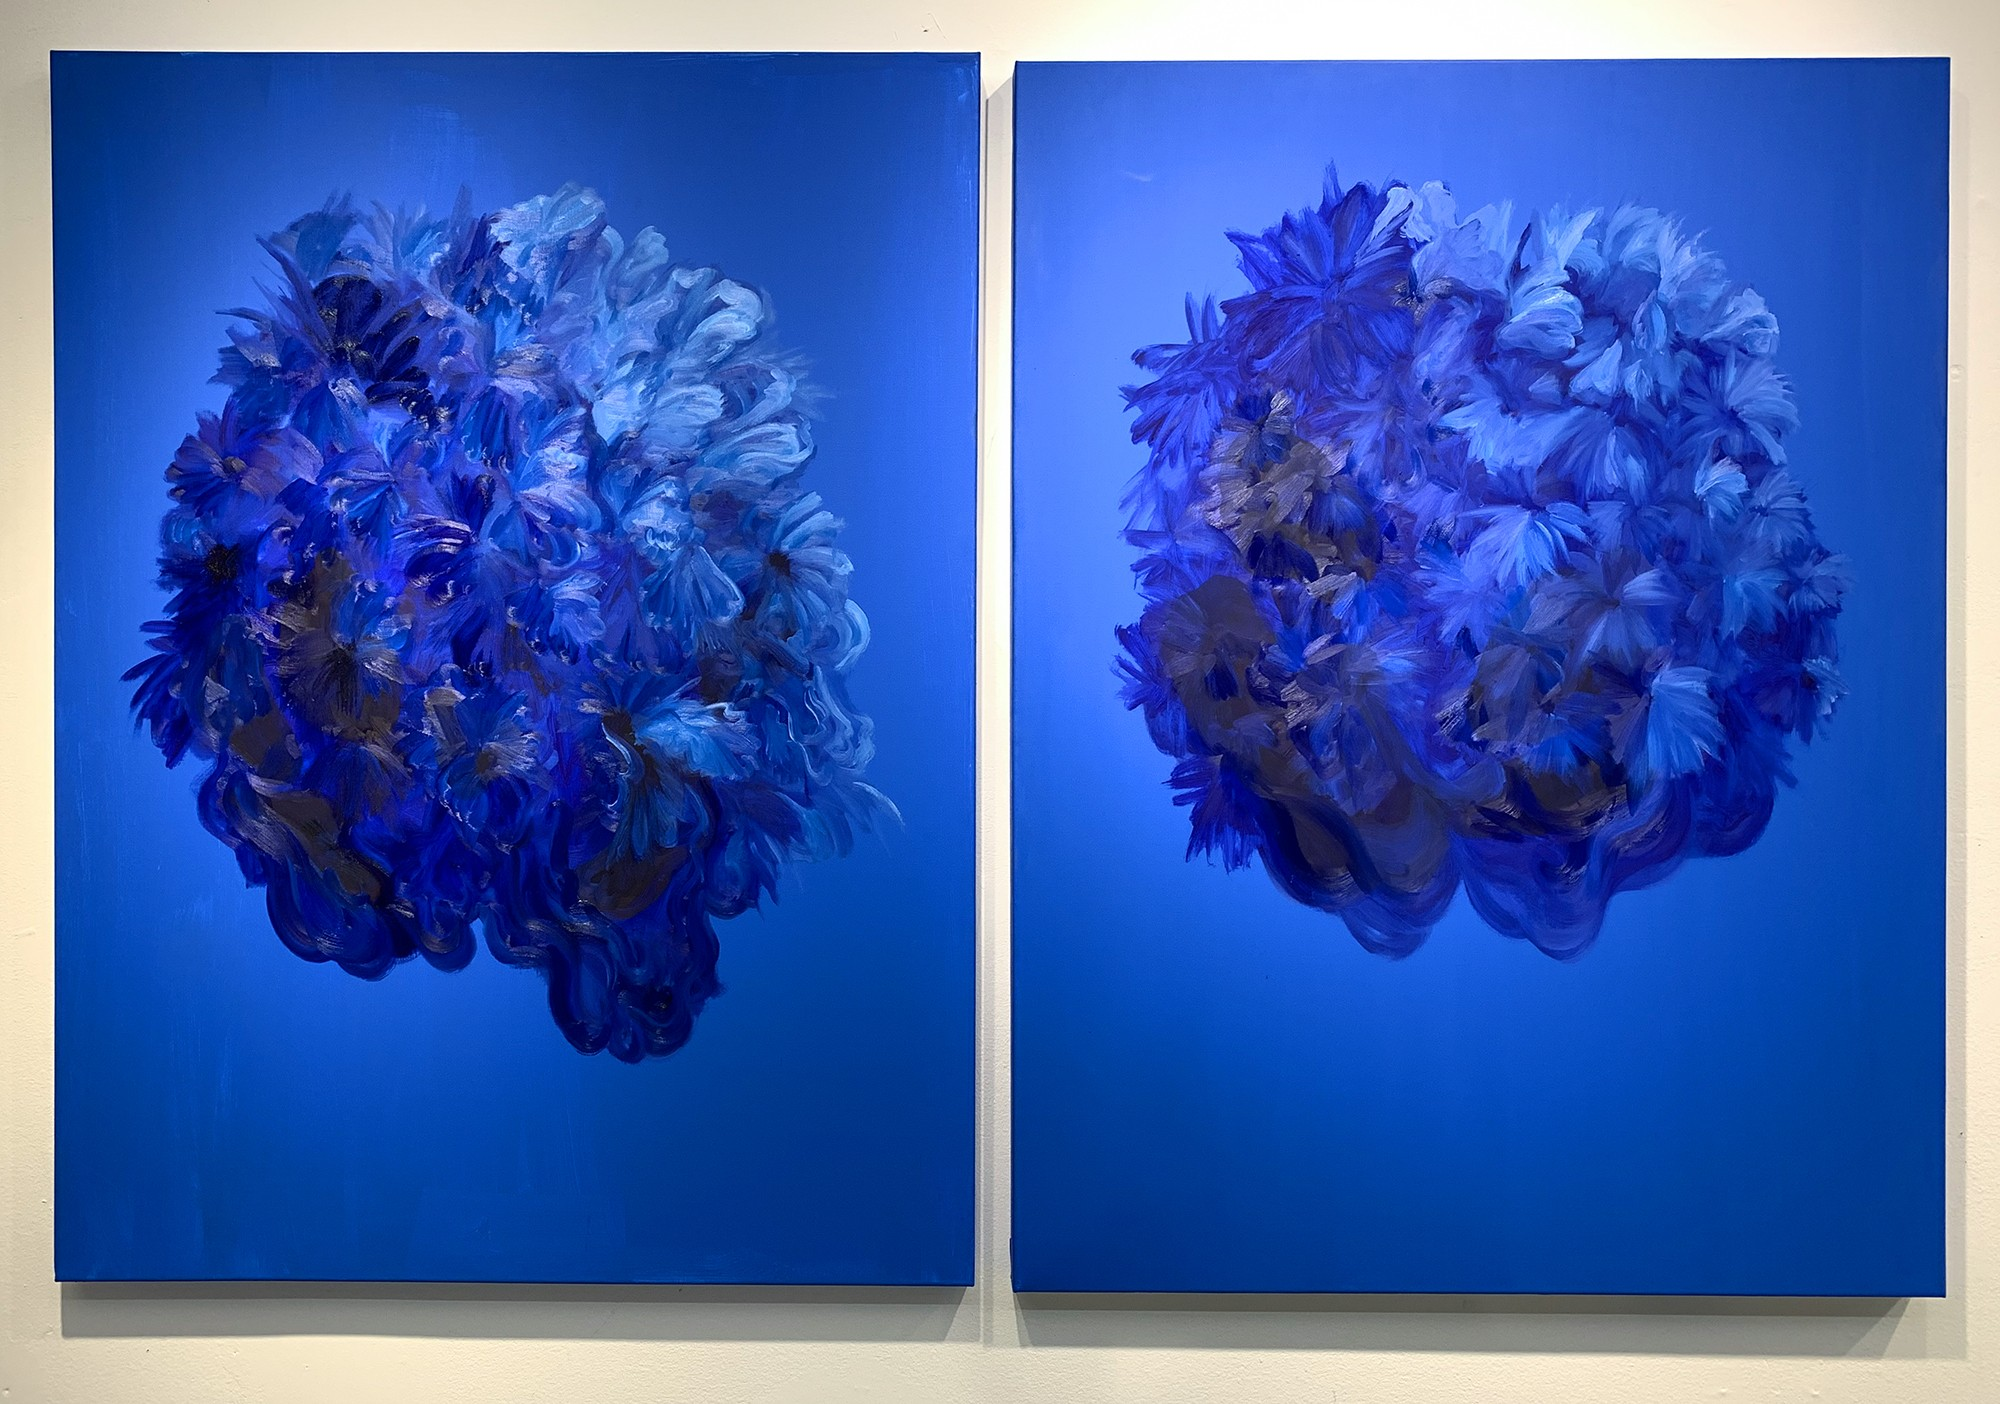 Untitled (Blue flower diptych) by Shelby Corso